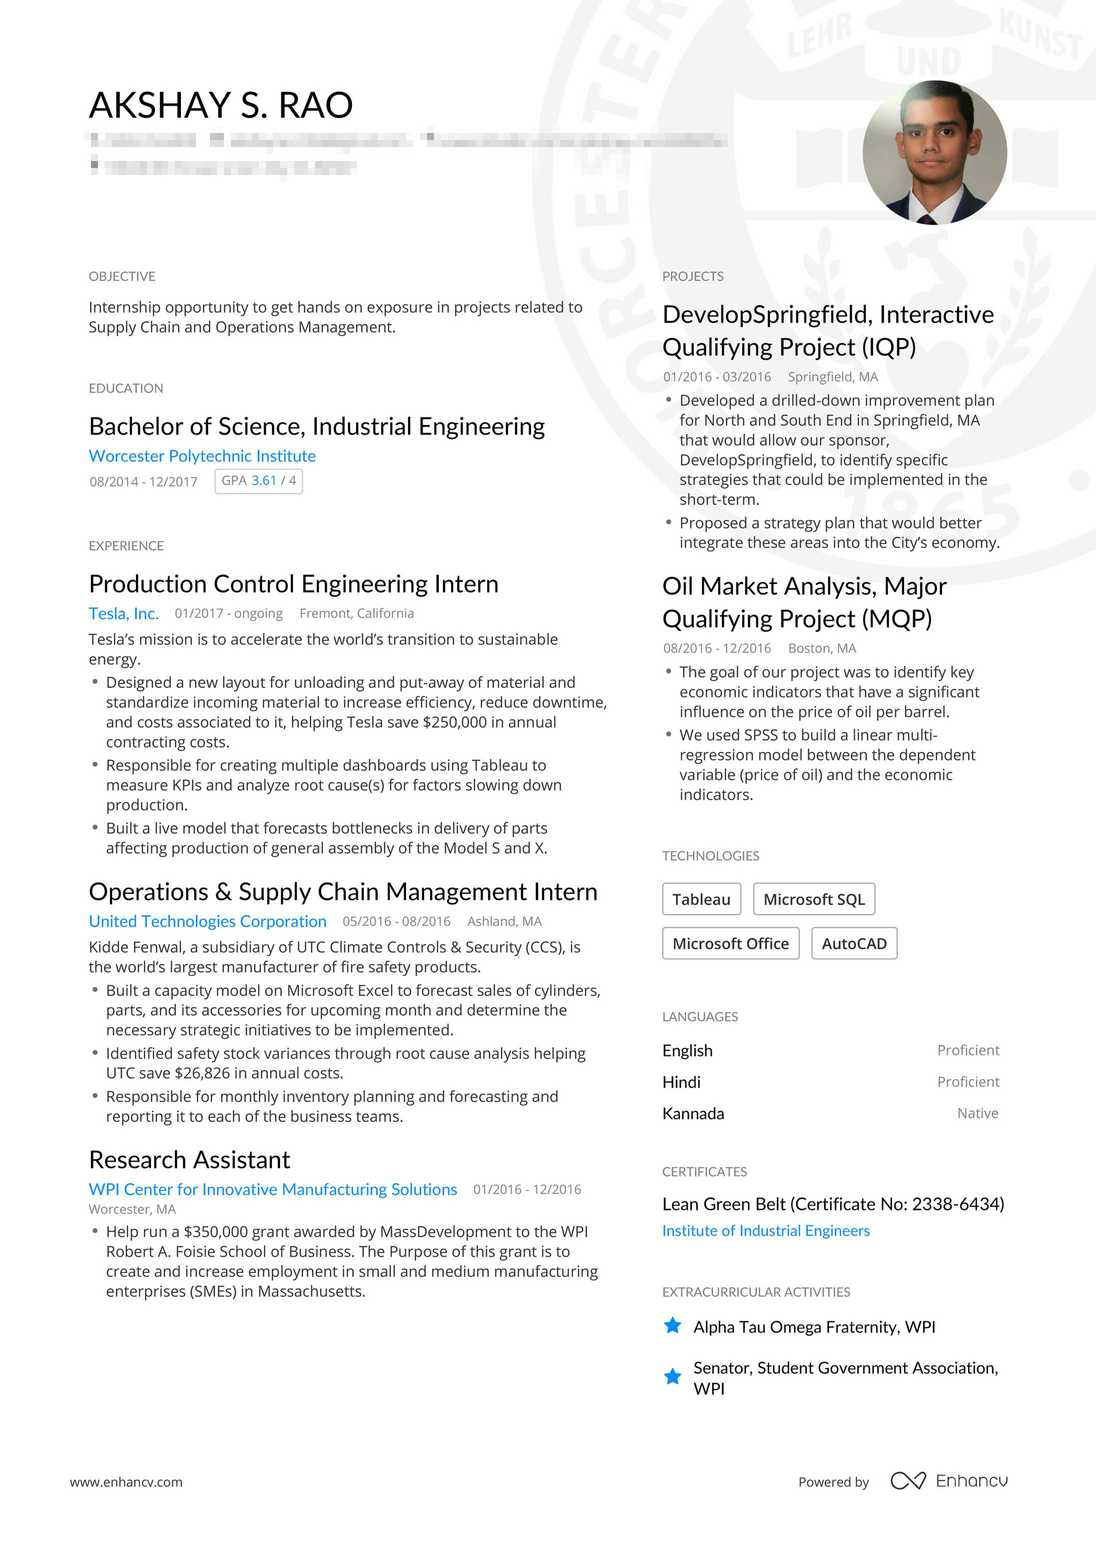 Best Online Resume Builders In 2020 A Comparative Analysis Guide